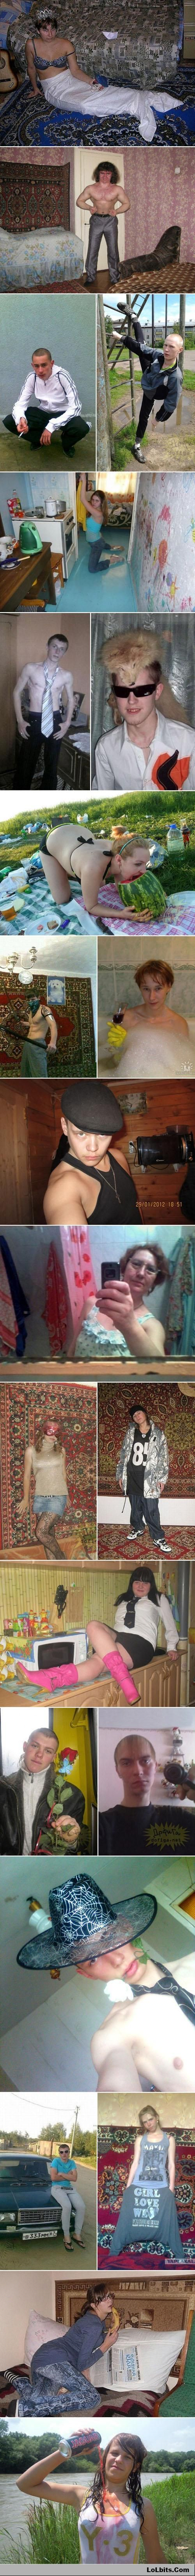 Weird pictures from Russian dating sites